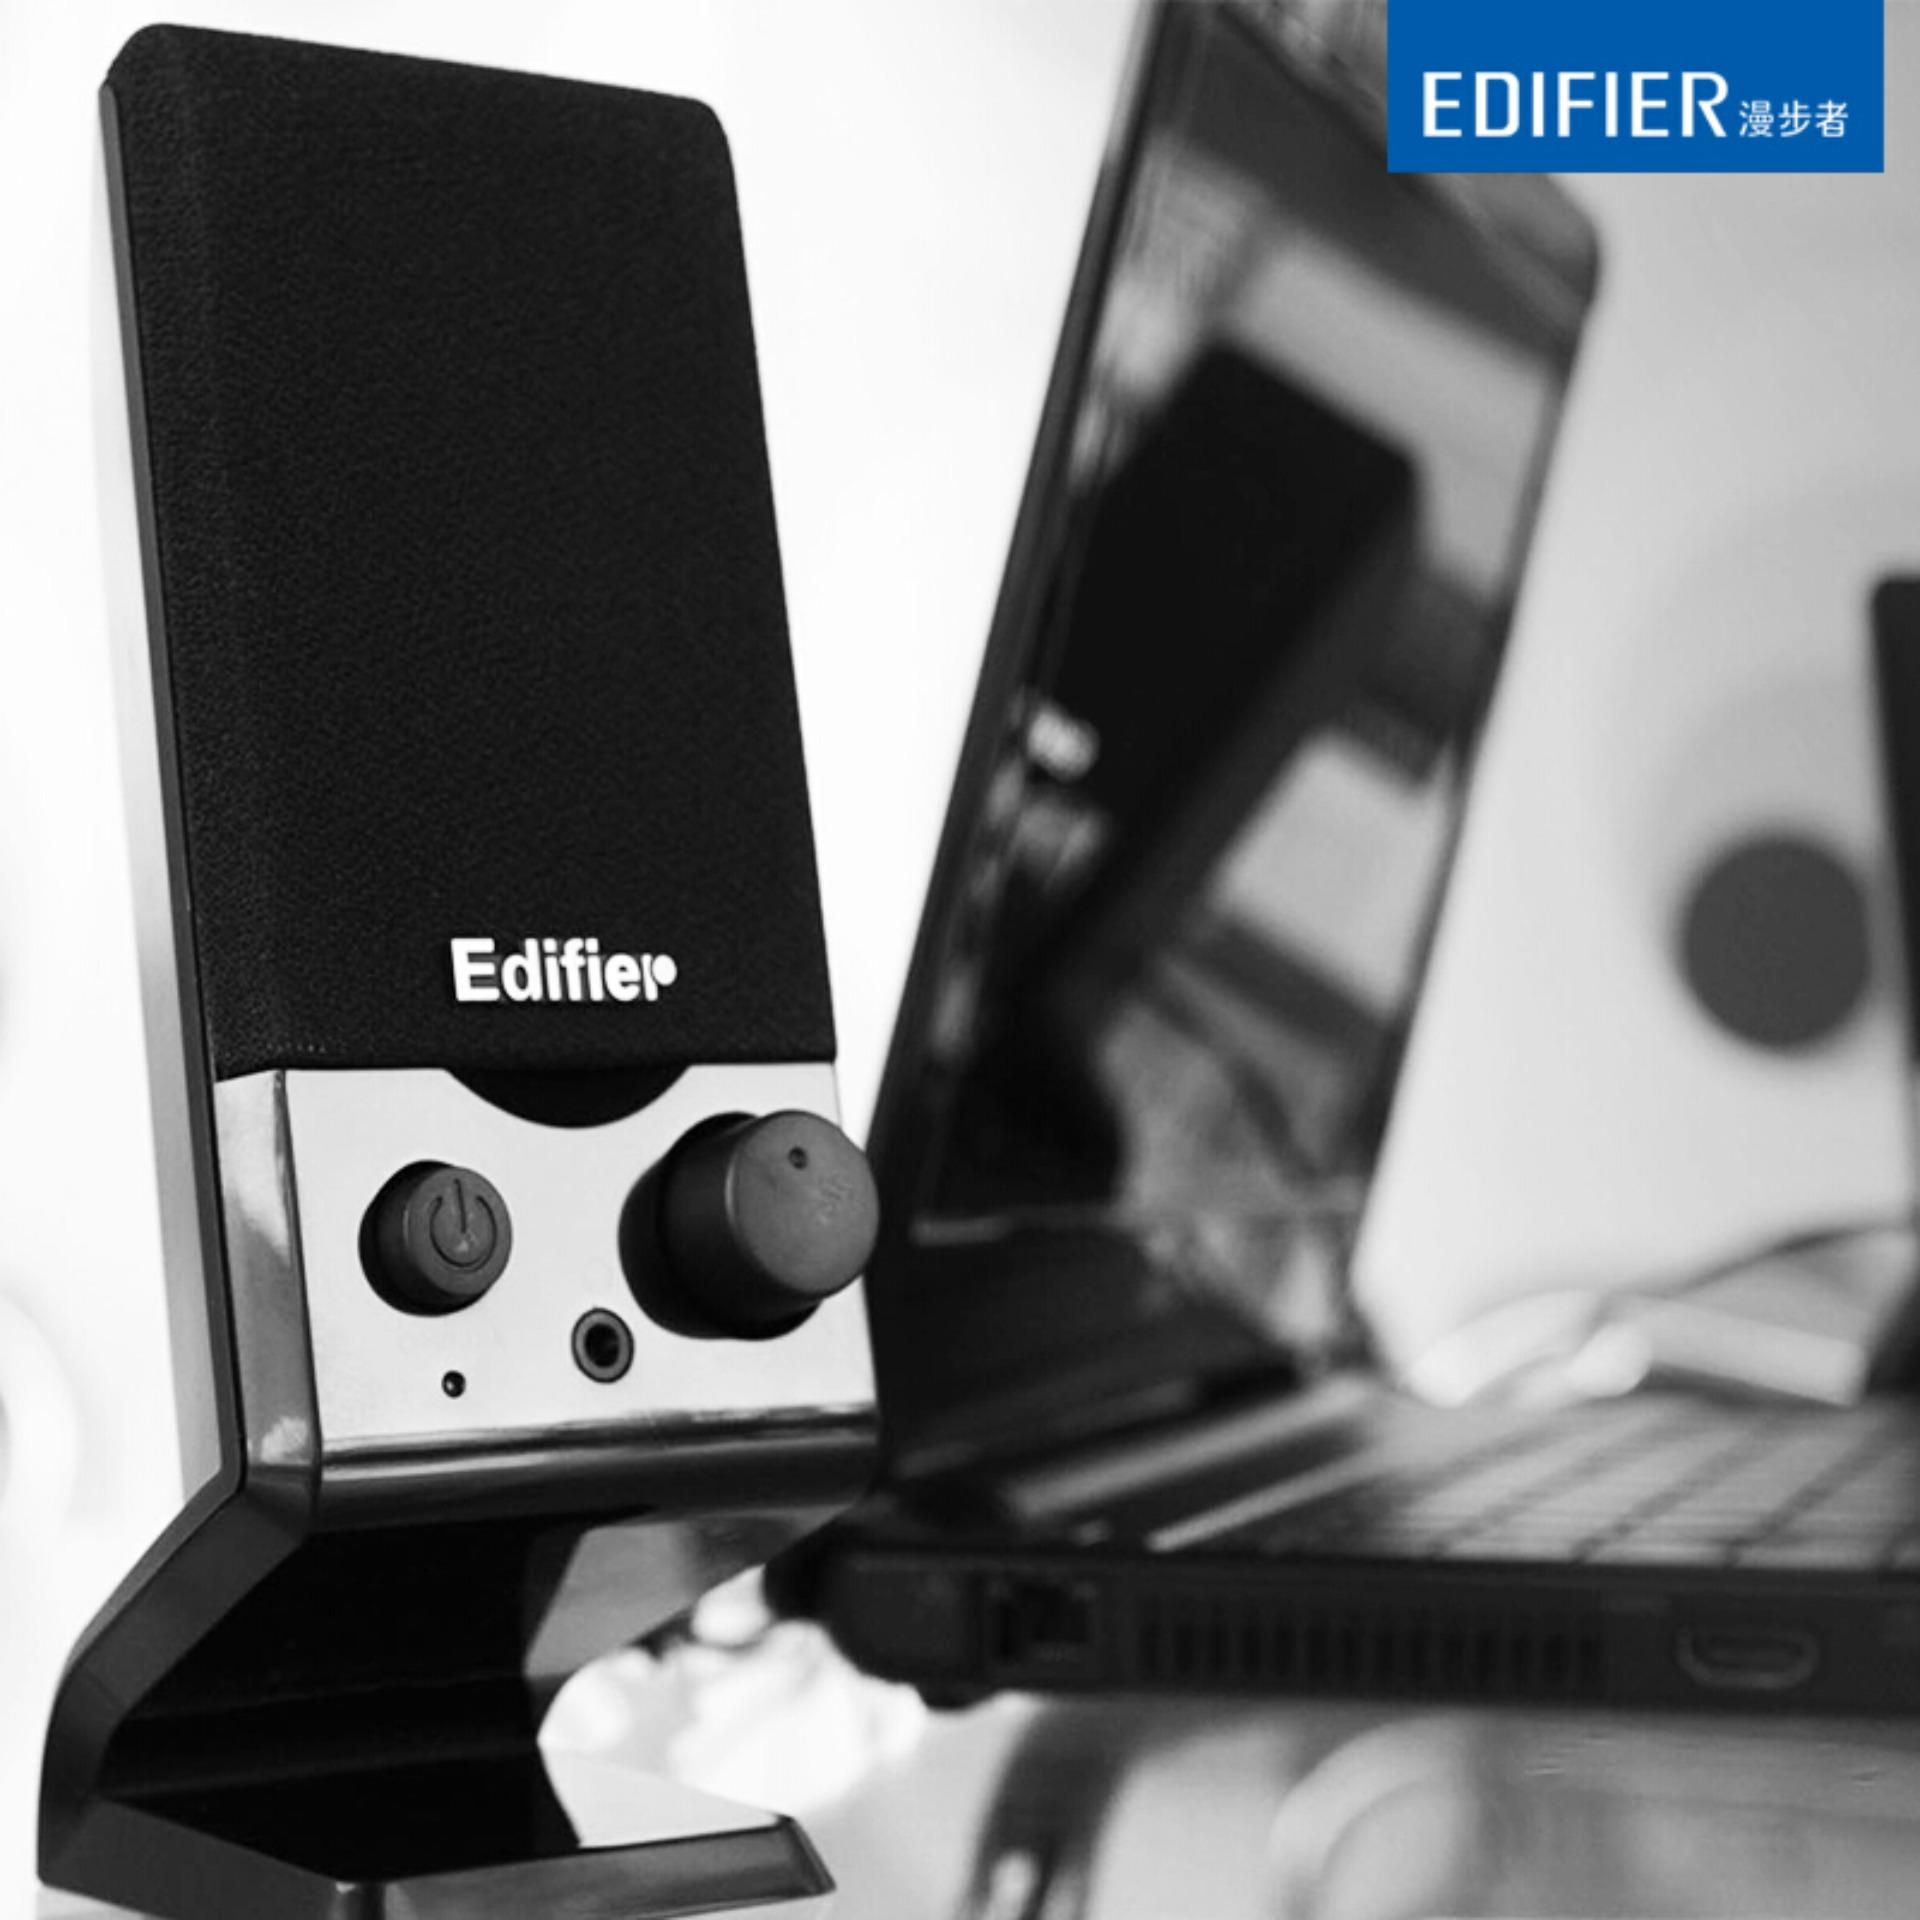 Sale Edifier R10U Pc Computer Usb Speaker 2 Channel Edifier Wholesaler